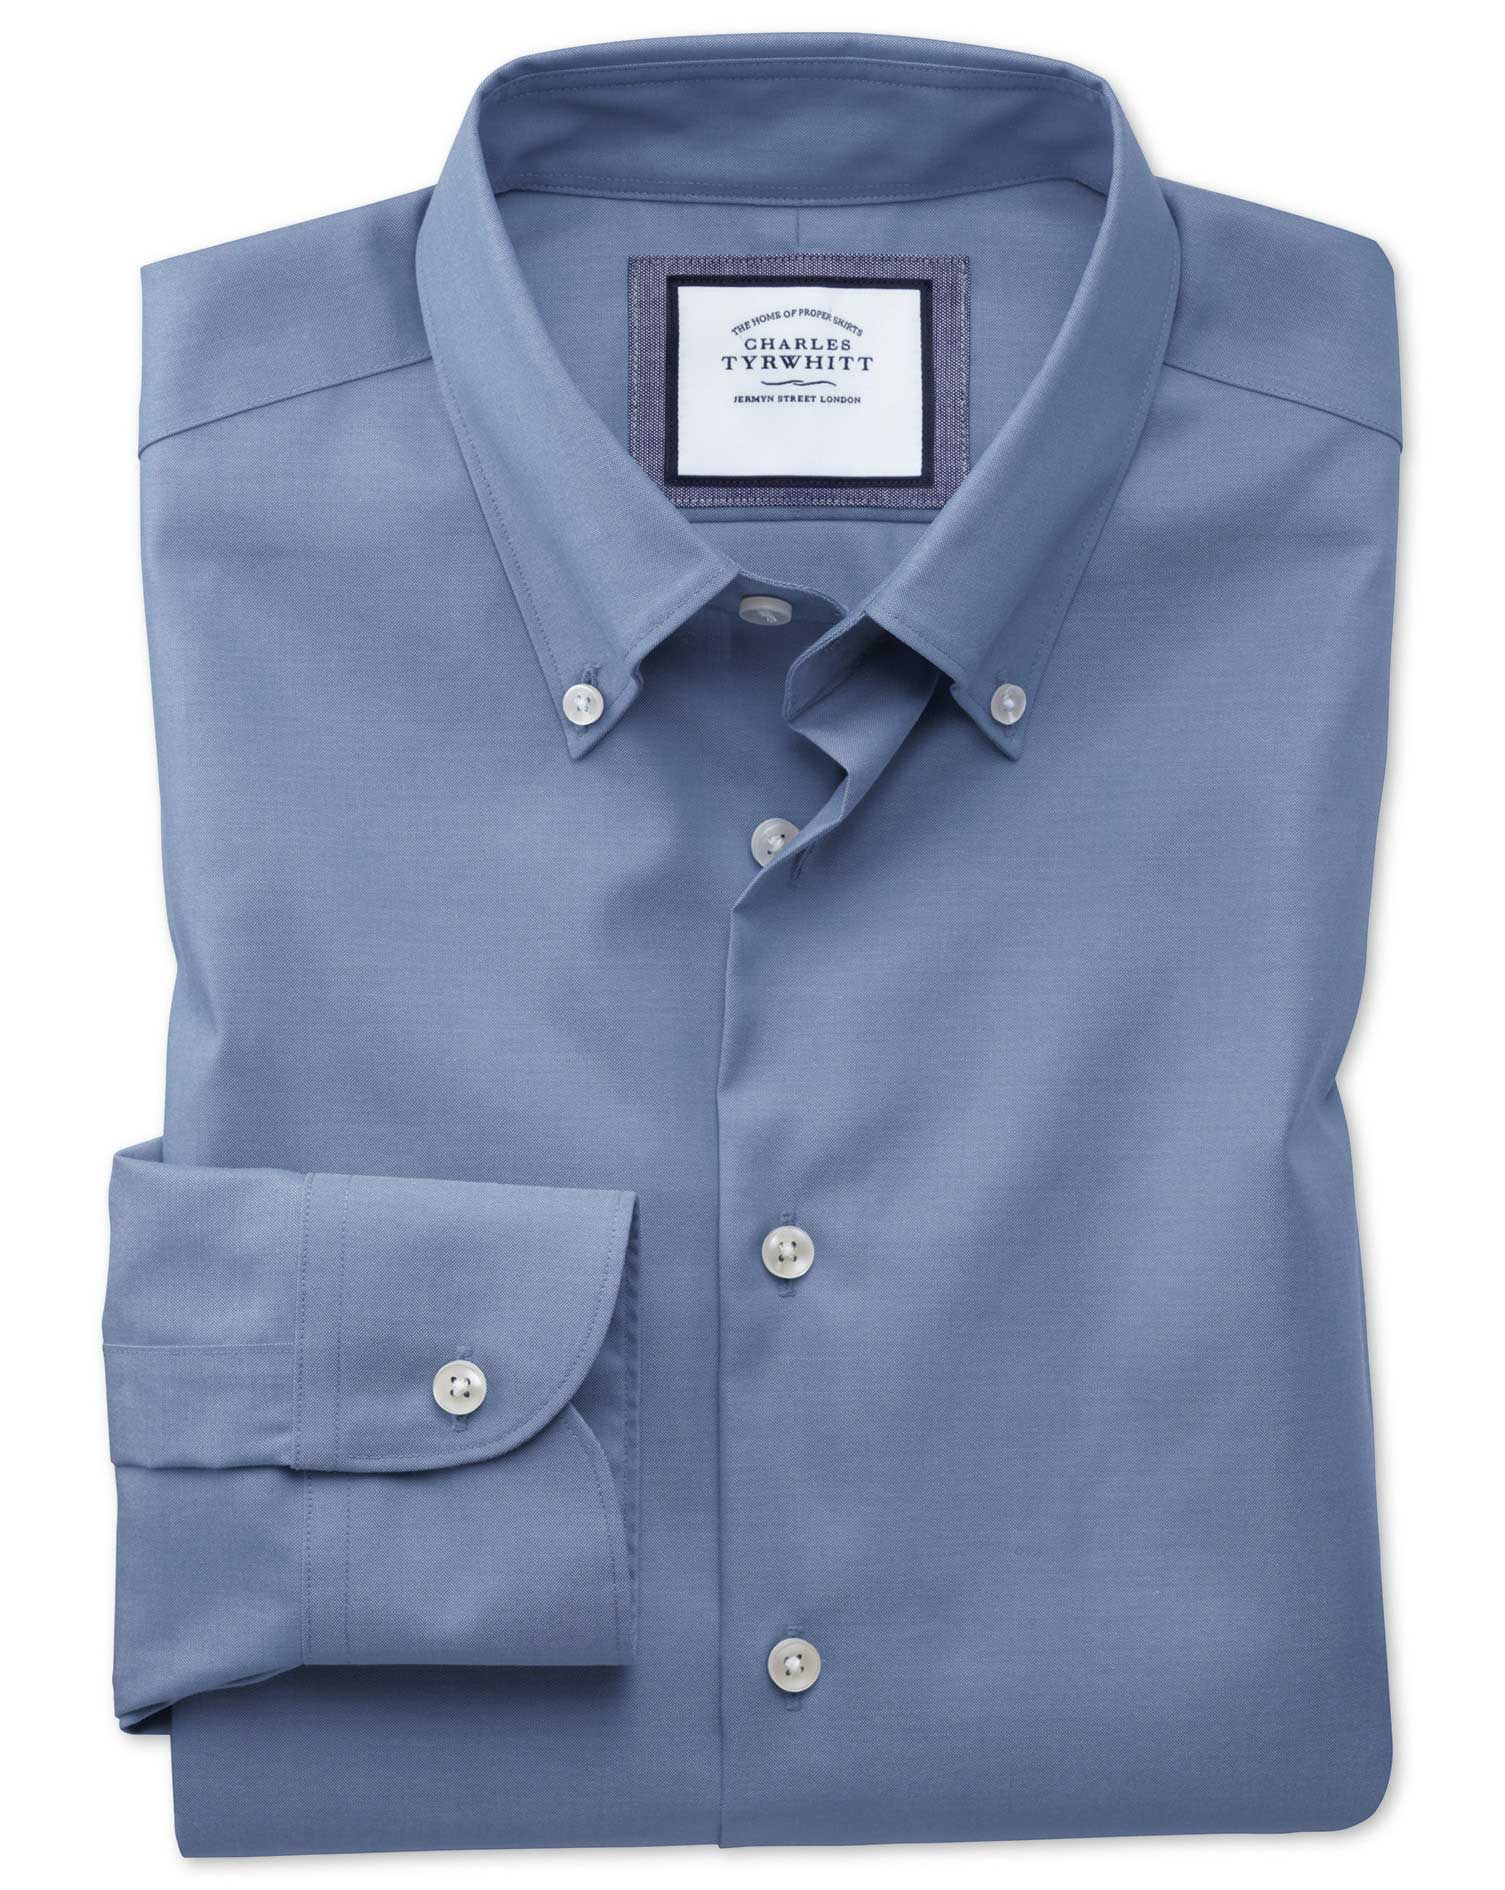 Classic Fit Button-Down Business Casual Non-Iron Mid Blue Cotton Formal Shirt Single Cuff Size 17.5/